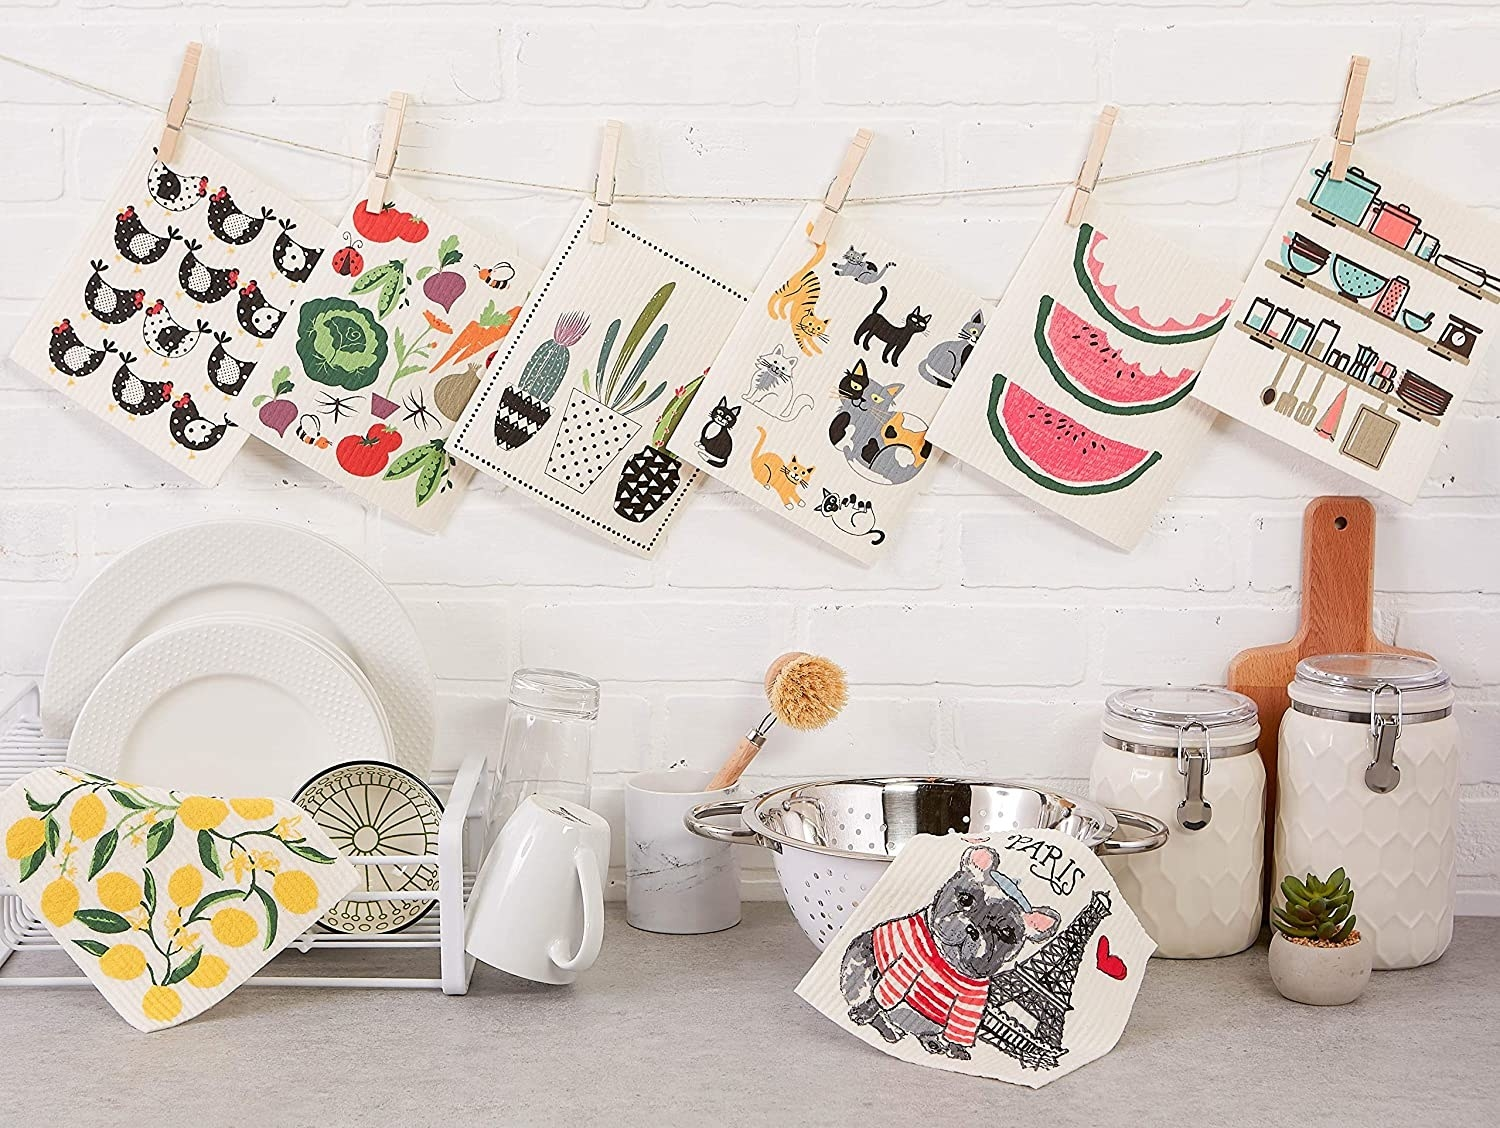 eight kitchen towles with various designs hanging up over a kitchen counter